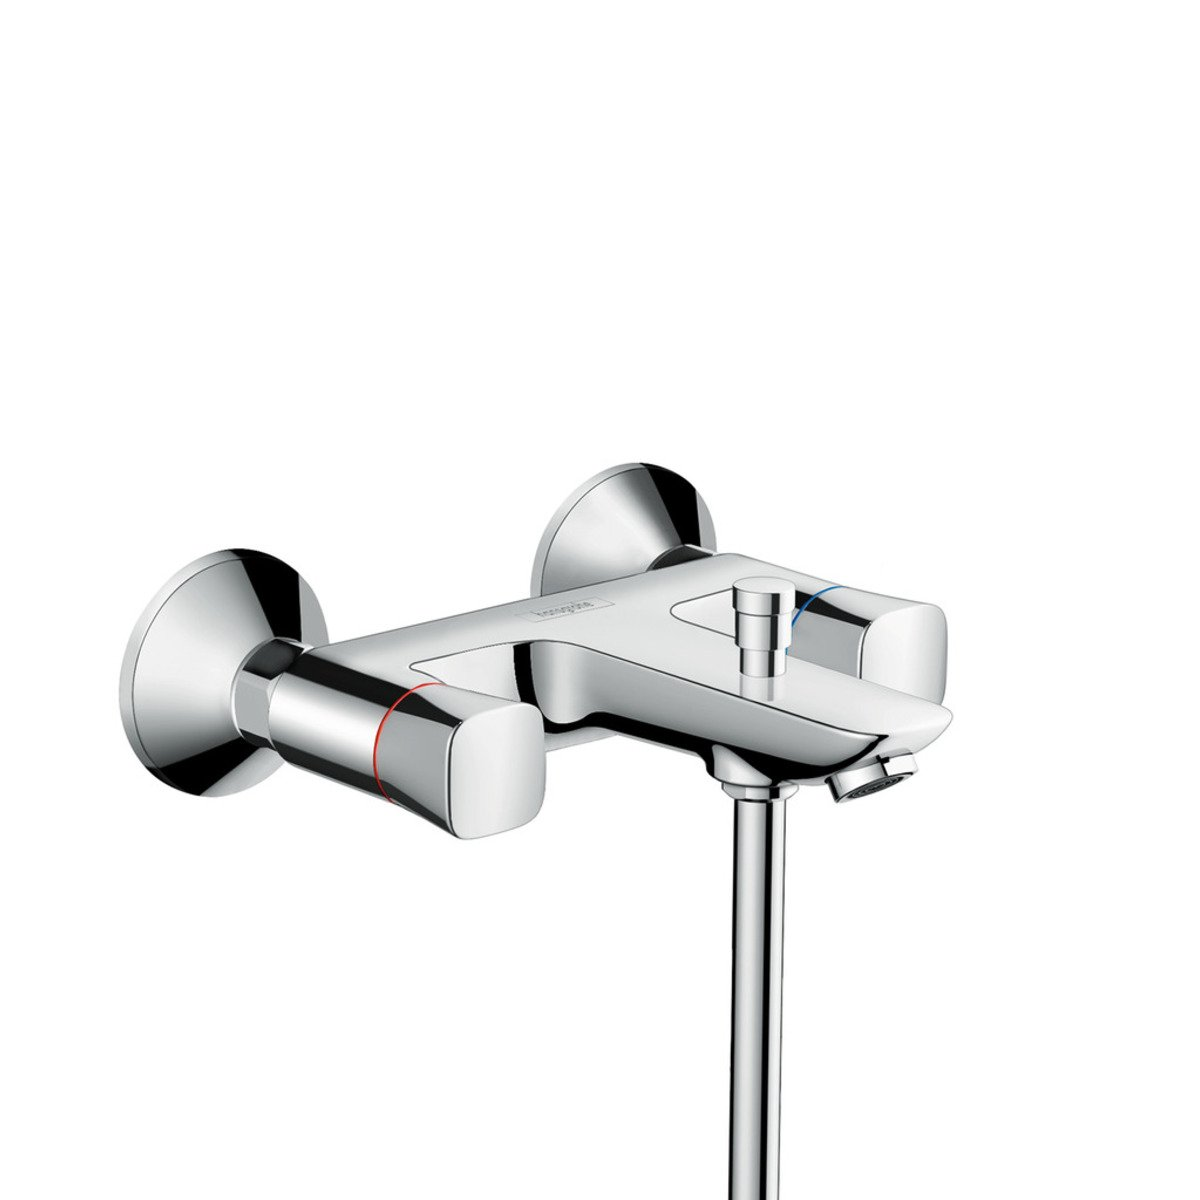 hansgrohe logis mitigeur bain encastrable avec inverseur chrome 71243000. Black Bedroom Furniture Sets. Home Design Ideas